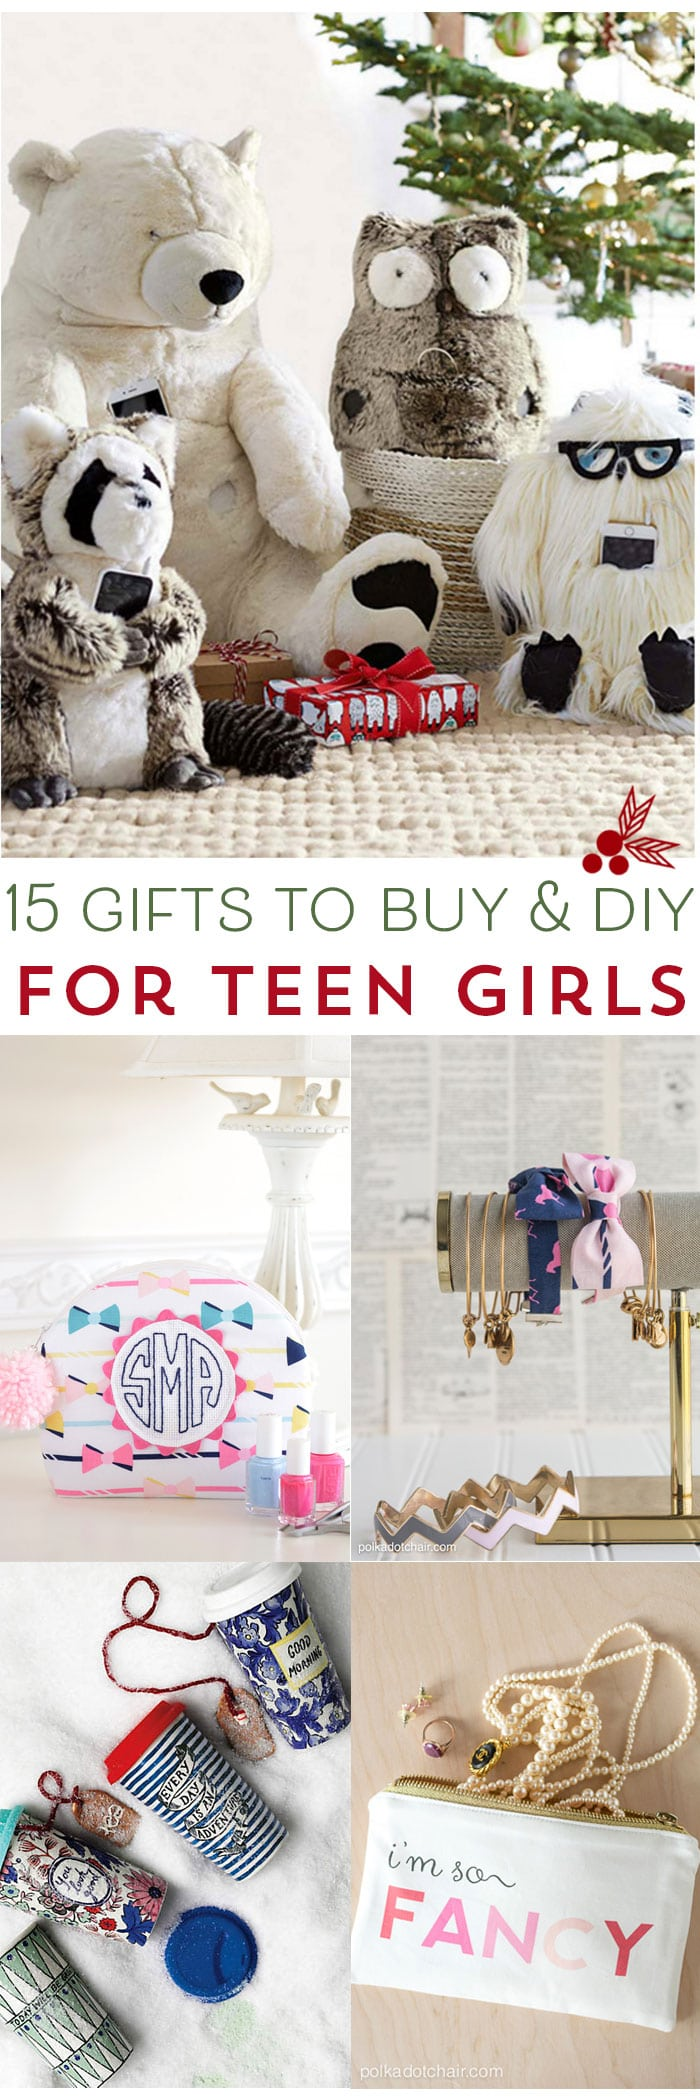 15 gifts for teen girls to diy and buy the polka dot chair. Black Bedroom Furniture Sets. Home Design Ideas